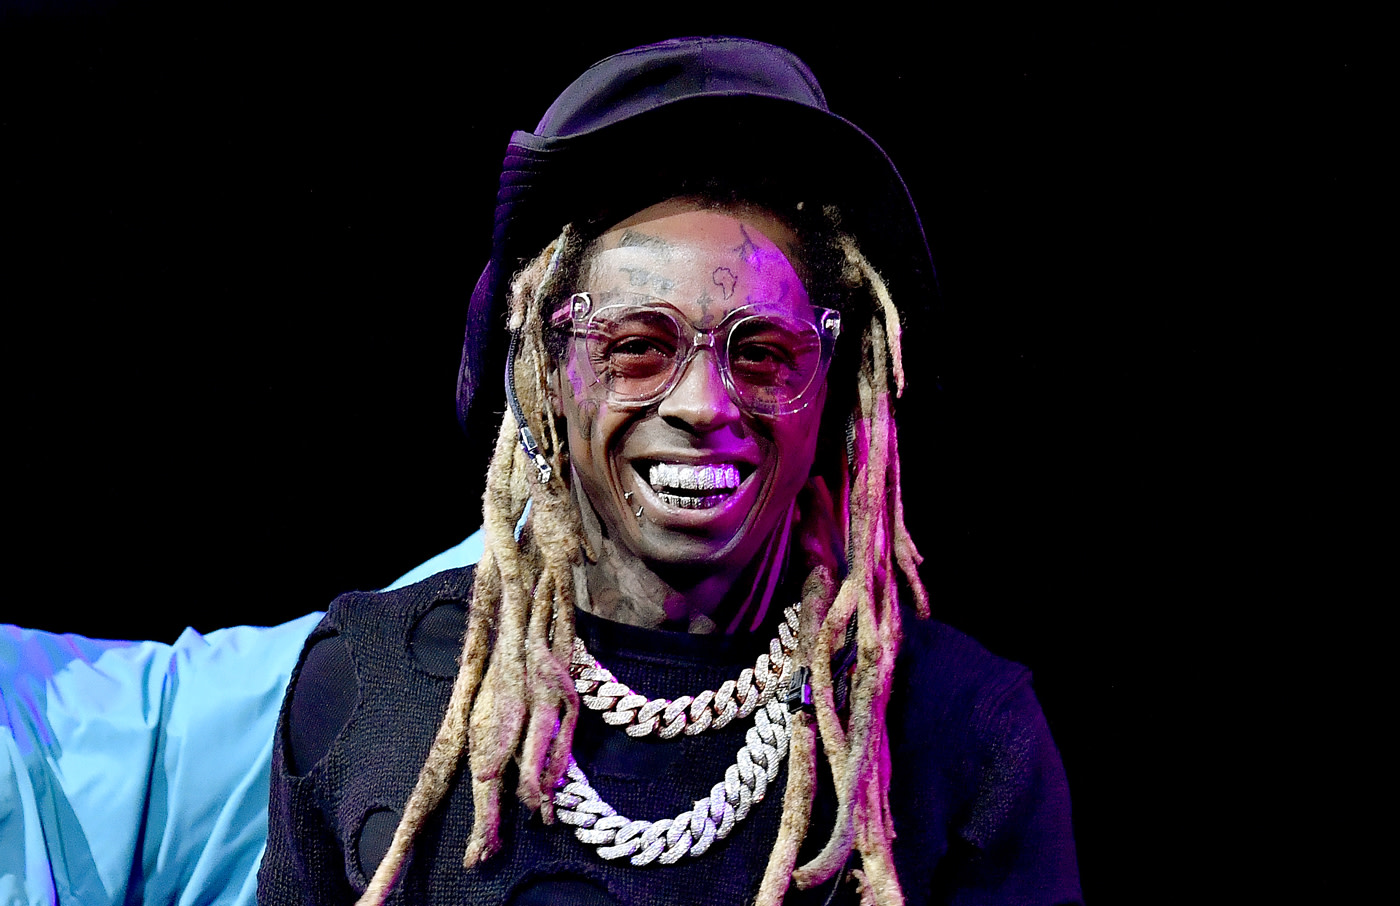 Lil Wayne S New Album Funeral First Impressions And Takeaways Complex